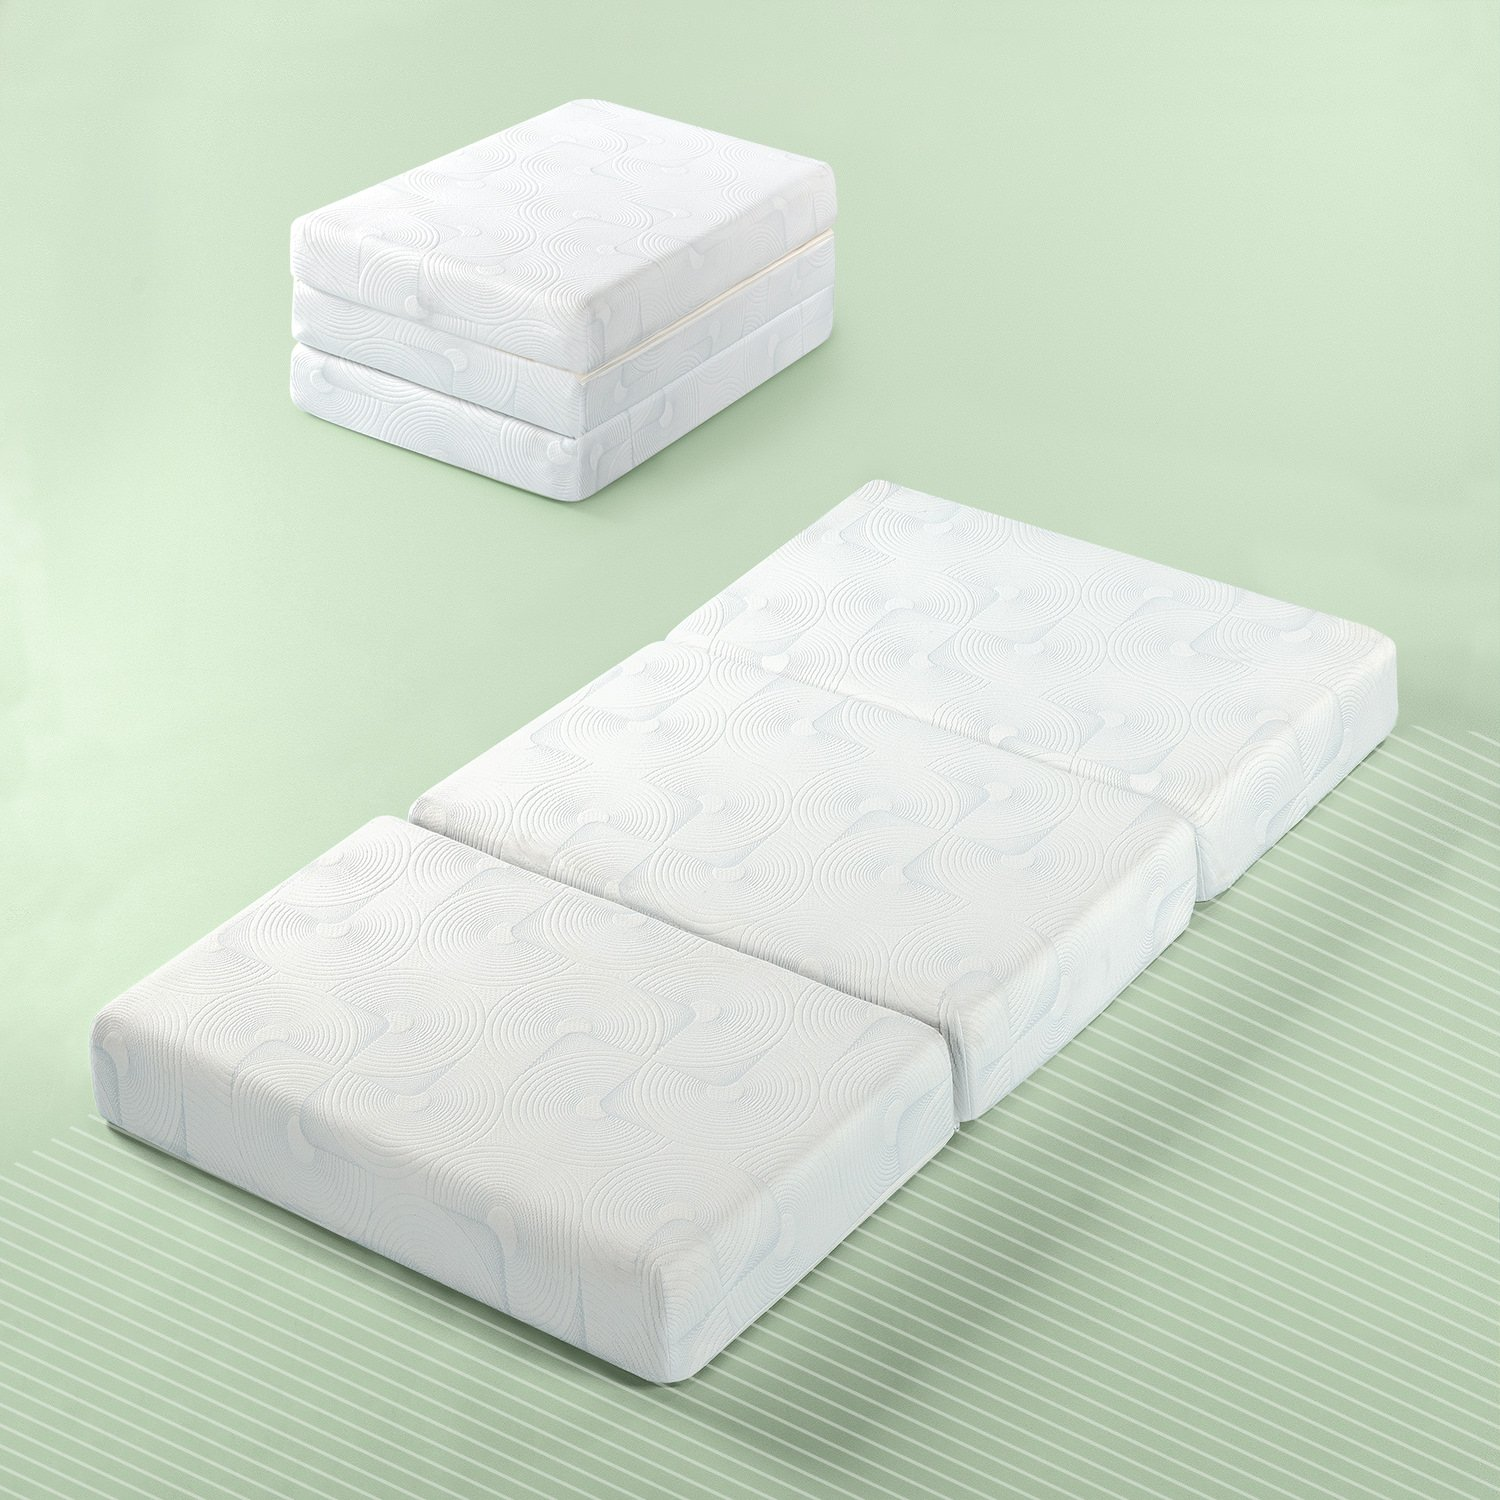 overstock tri fold today so foldngo famous inch free mattress is size single but shipping mats twin mat why or